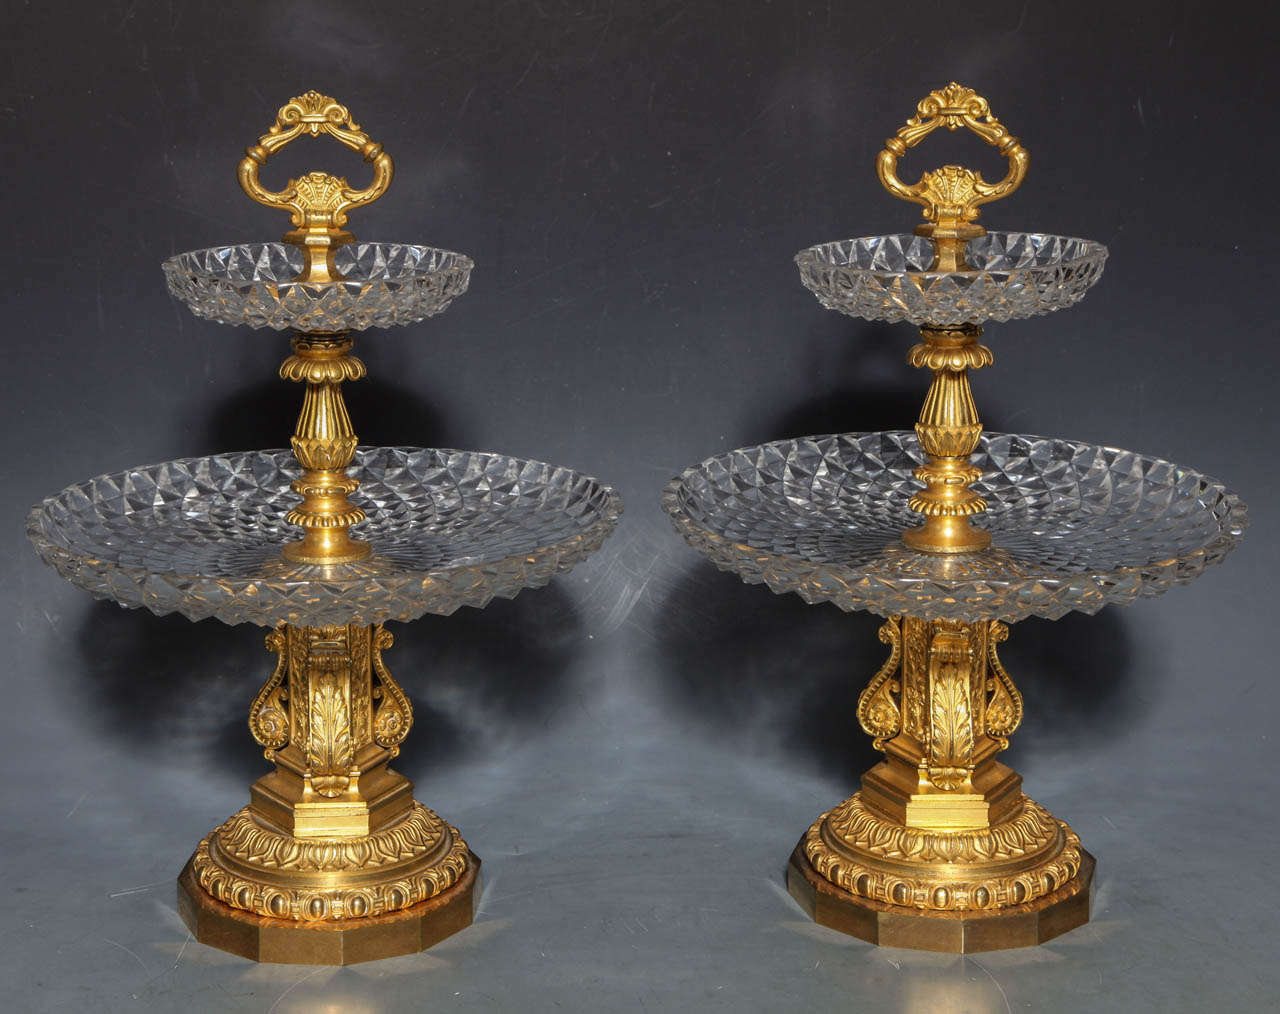 A fine pair of Antique French Neoclassical hand diamond cut Crystal and Dore Bronze Two Tiered Tazzas/Centerpieces, Signed by Pierre-Philippe Thomier (1751–1843). The diamond cut trays sparkle against Dore bronze mounts of the finest quality. The